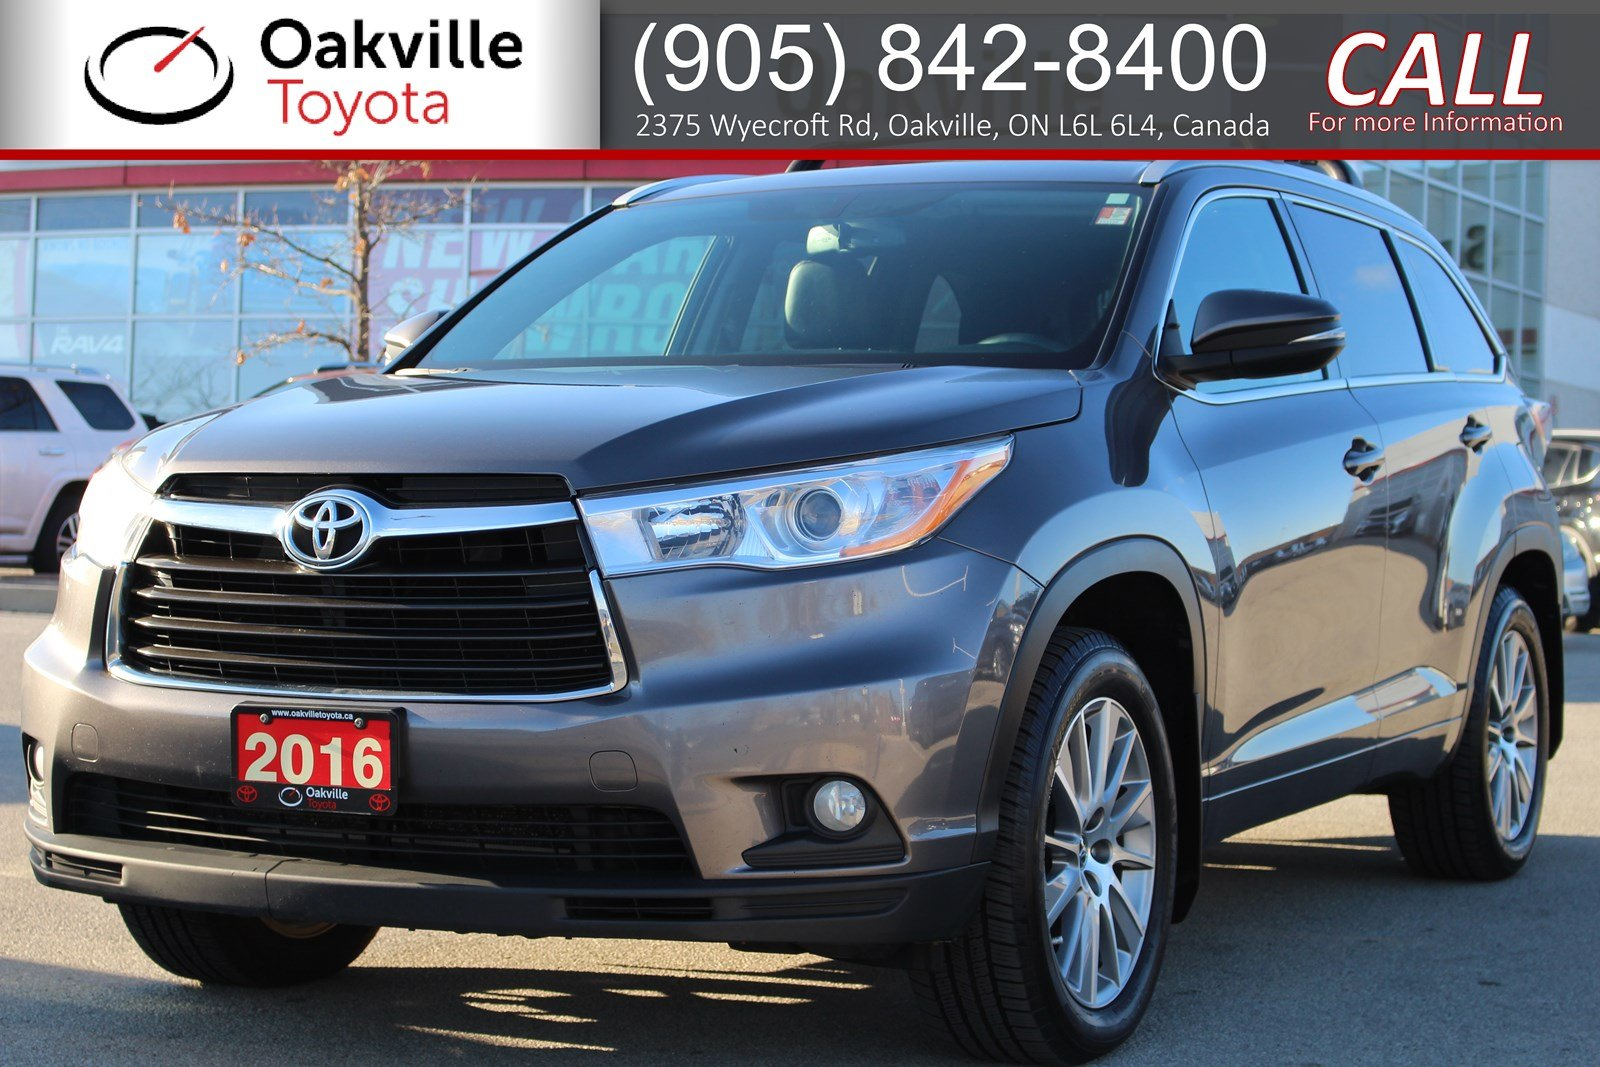 Pre-Owned 2016 Toyota Highlander XLE AWD 8-Passenger with Clean Carfax, Single Owner, and New Tires